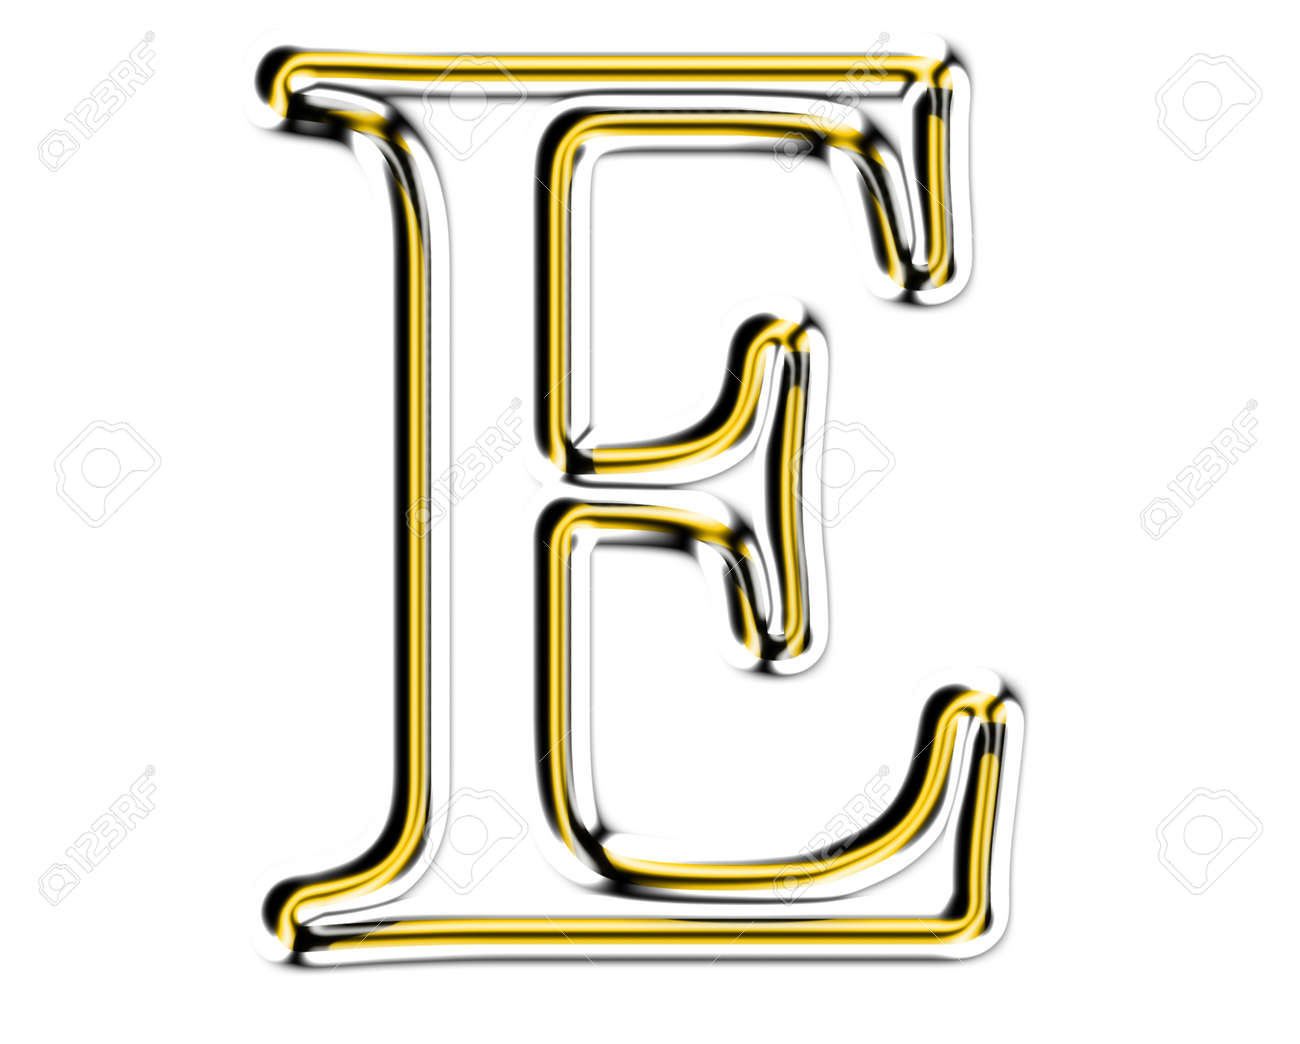 Letter E from metal solid alphabet. Stock Photo - 11507349